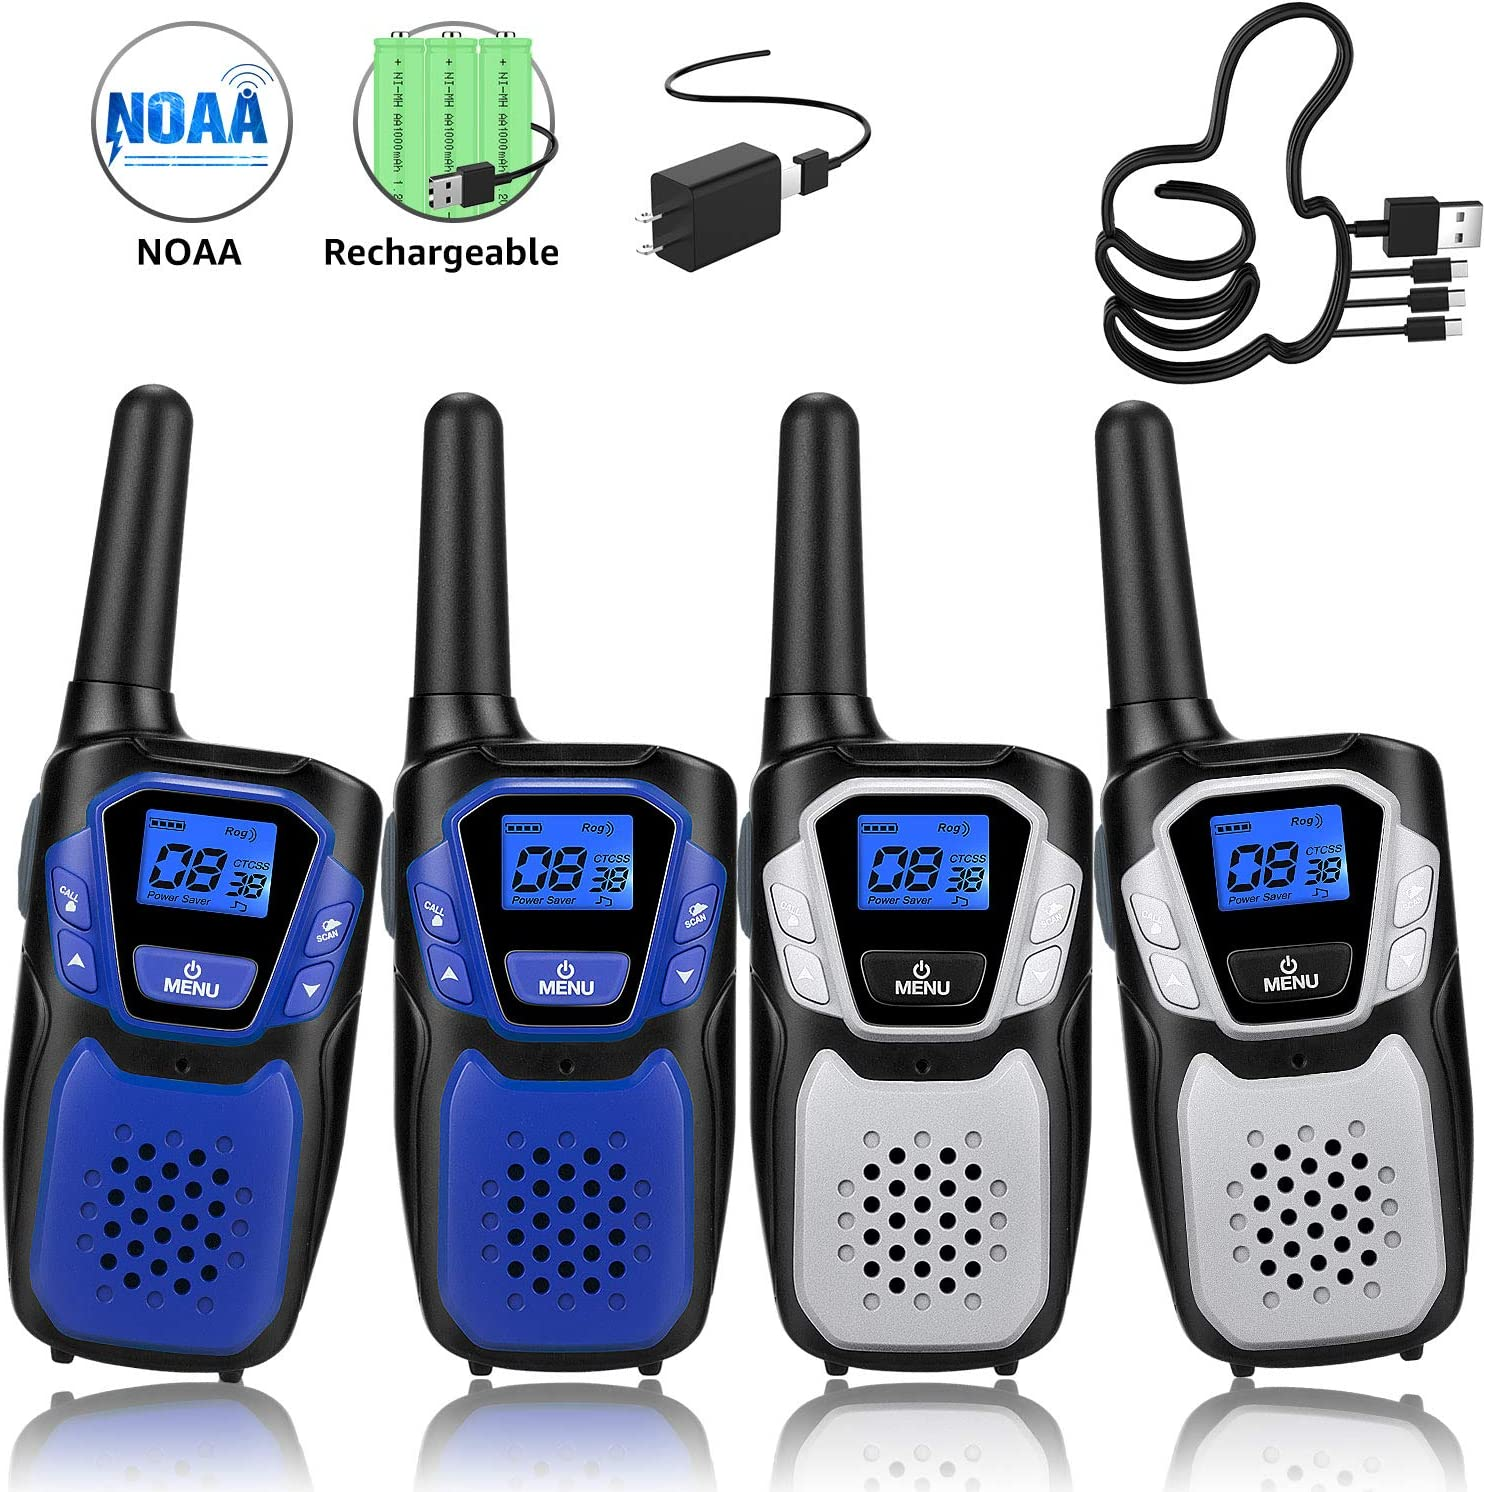 Walkie Talkies Rechargeable, 4 Pack Easy to Use Long Range Walky Talky for Adult Handheld Two Way Radio with NOAA for Hiking Camping (2Blue & 2Silver with Regular Micro-USB Charger/Battery/Lanyard)